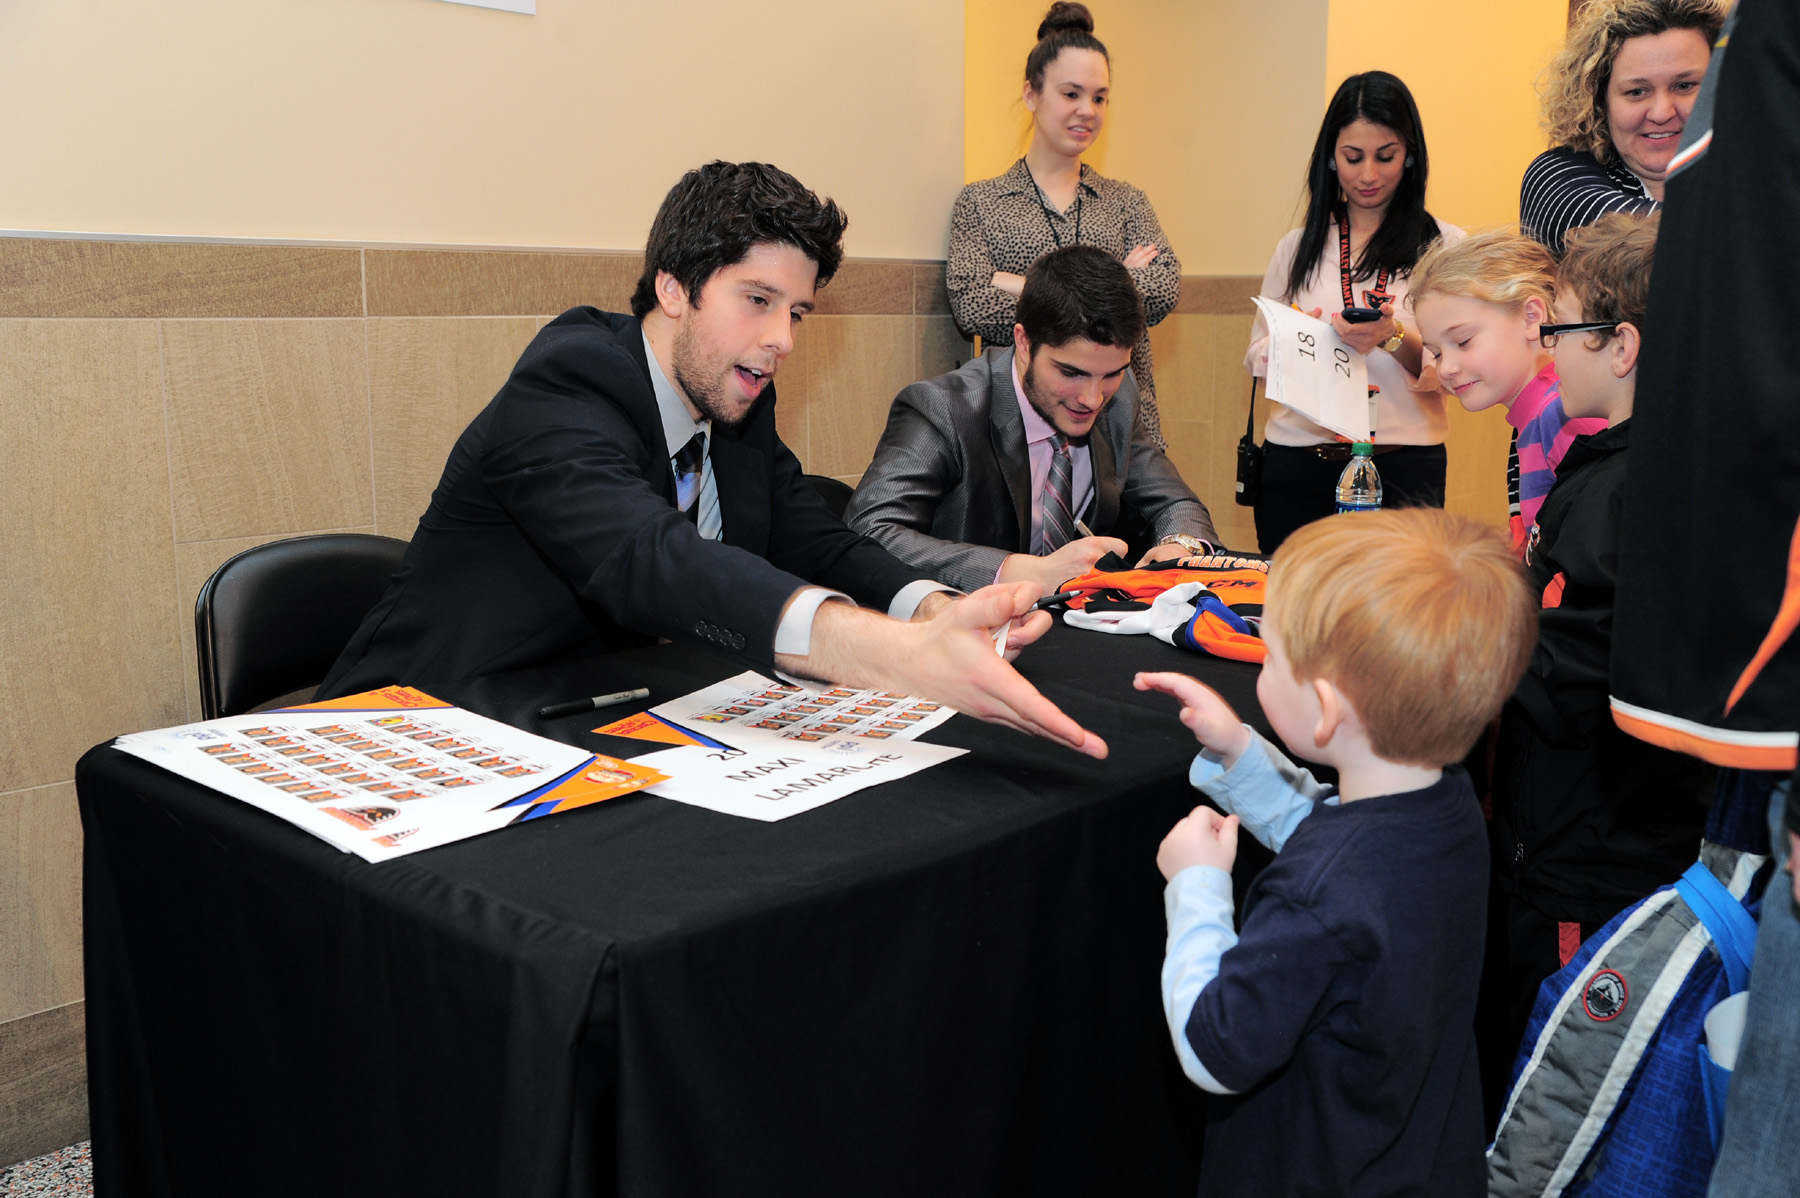 Post-Game Autographs with Phantoms Players - Saturday, October 22 @ PPL Center